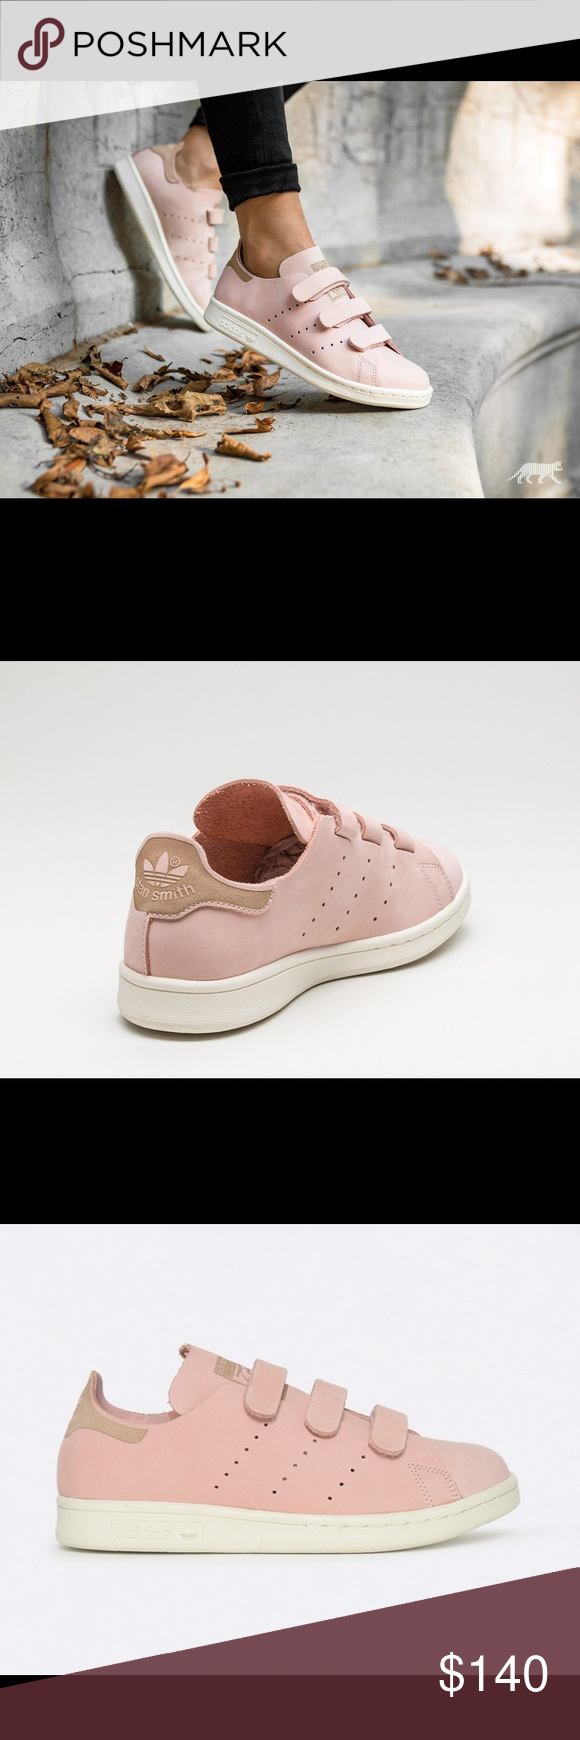 cheaper 4b8e9 34a1b Adidas stan smith One of a kind! 3 velcro straps, Color Vapour Pink  Vapour  Pink  Off White (S32271) Adidas Shoes Athletic Shoes